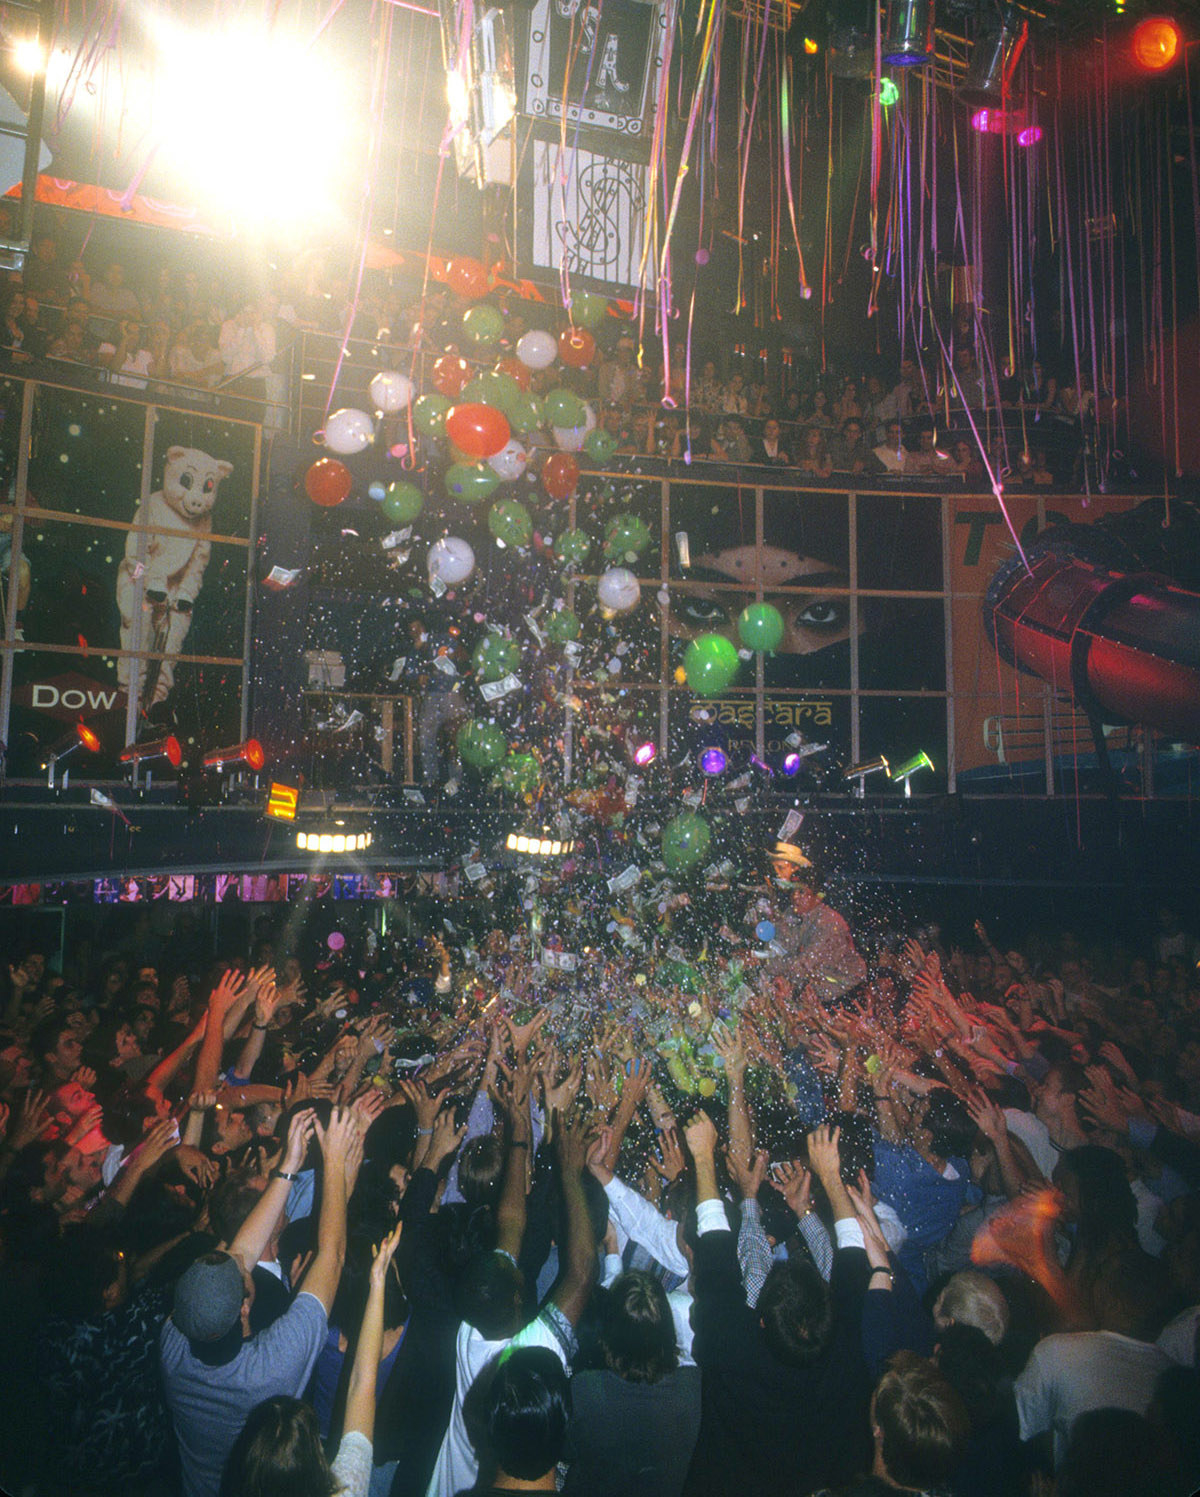 Dancers and partygoers celebrate at Club USA in 1993.